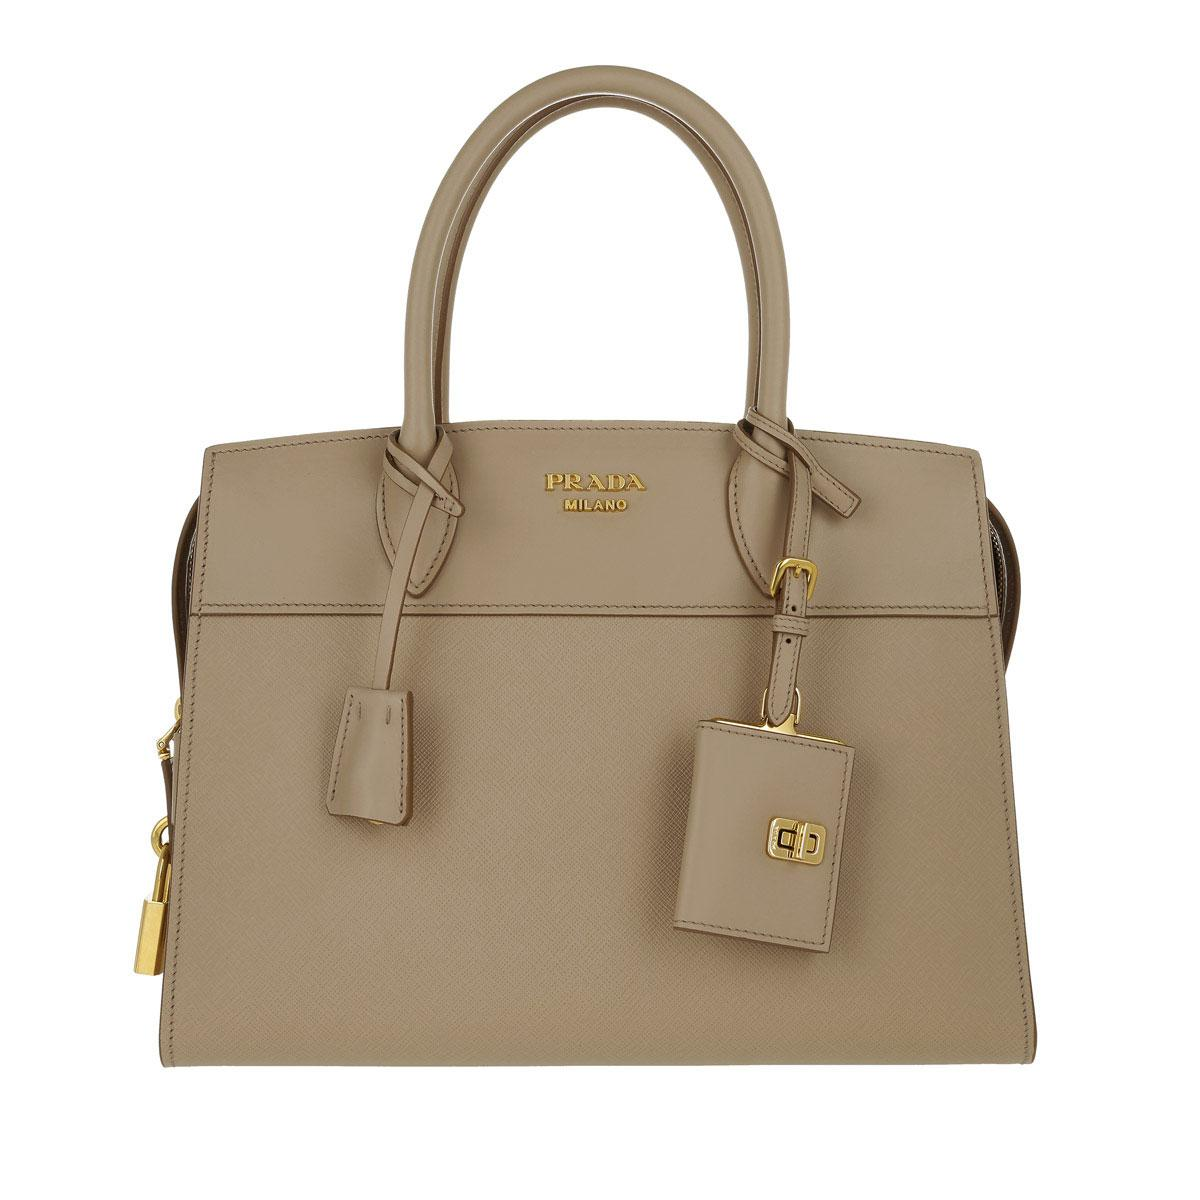 4db1a77b5acc Prada Esplanade Tote Bag Saffiano + City Calf Cameo in Natural - Lyst